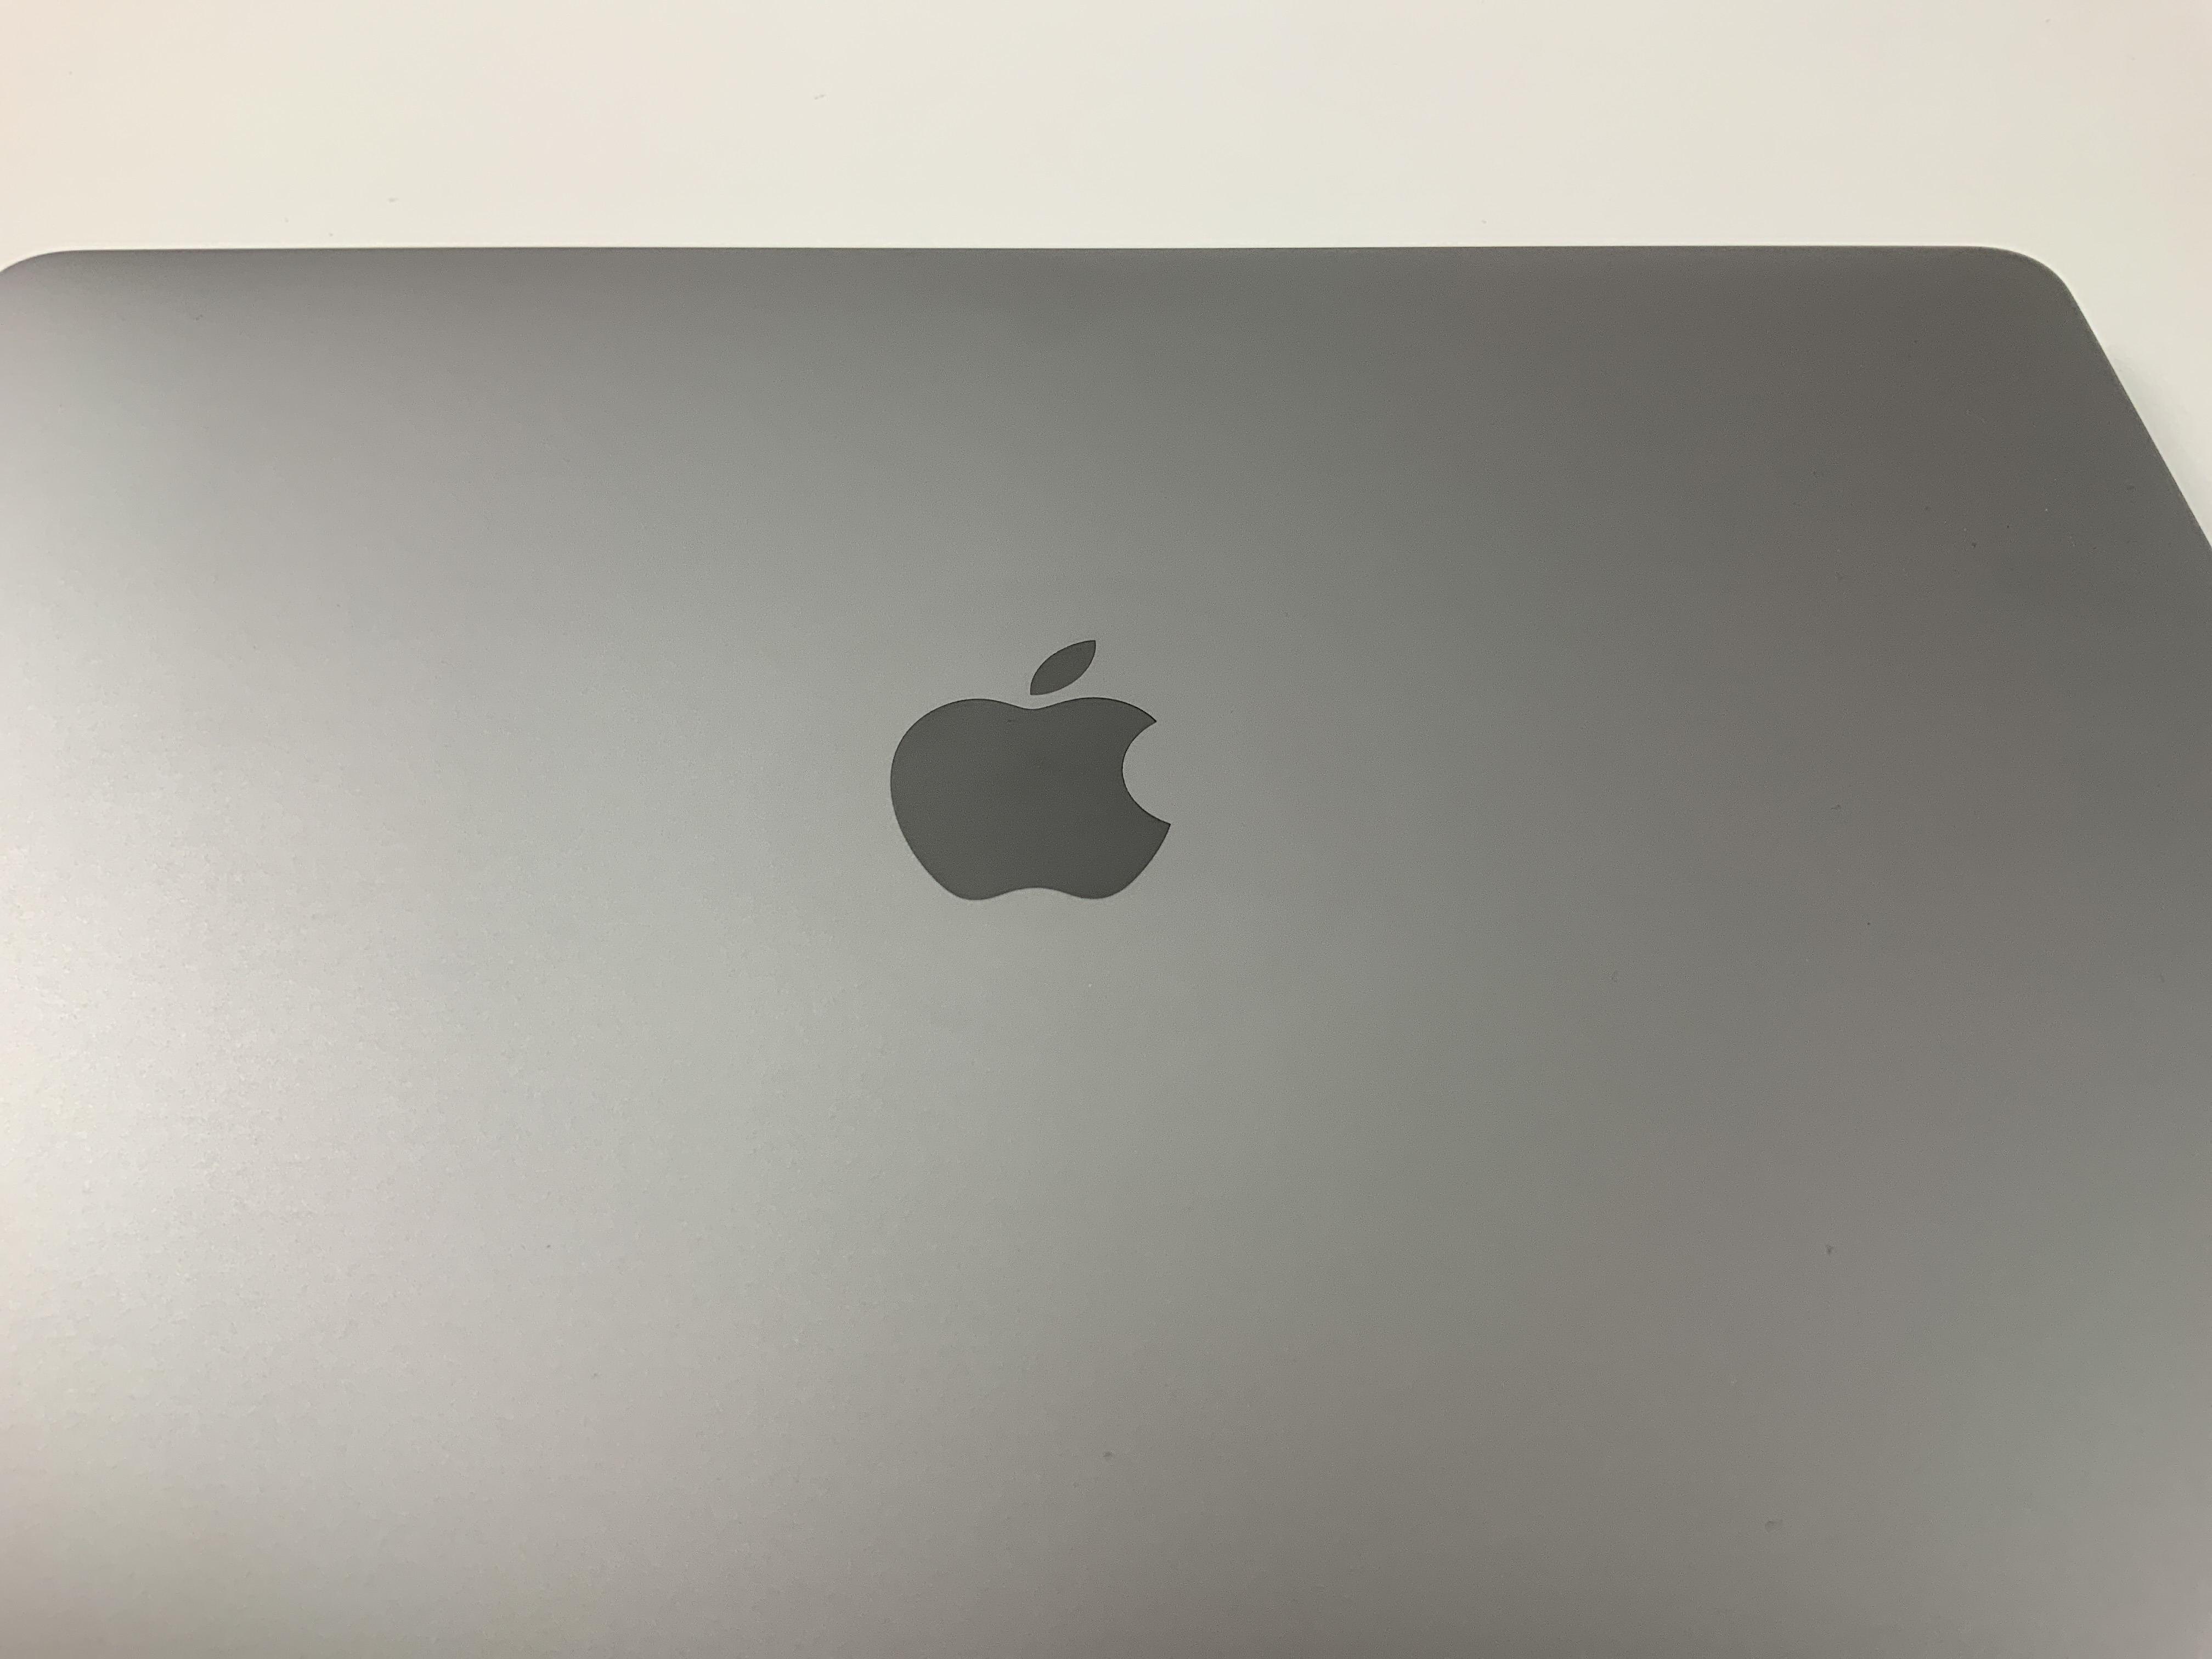 "MacBook Pro 13"" 4TBT Mid 2017 (Intel Core i7 3.5 GHz 16 GB RAM 1 TB SSD), Space Gray, Intel Core i7 3.5 GHz, 16 GB RAM, 1 TB SSD, bild 4"